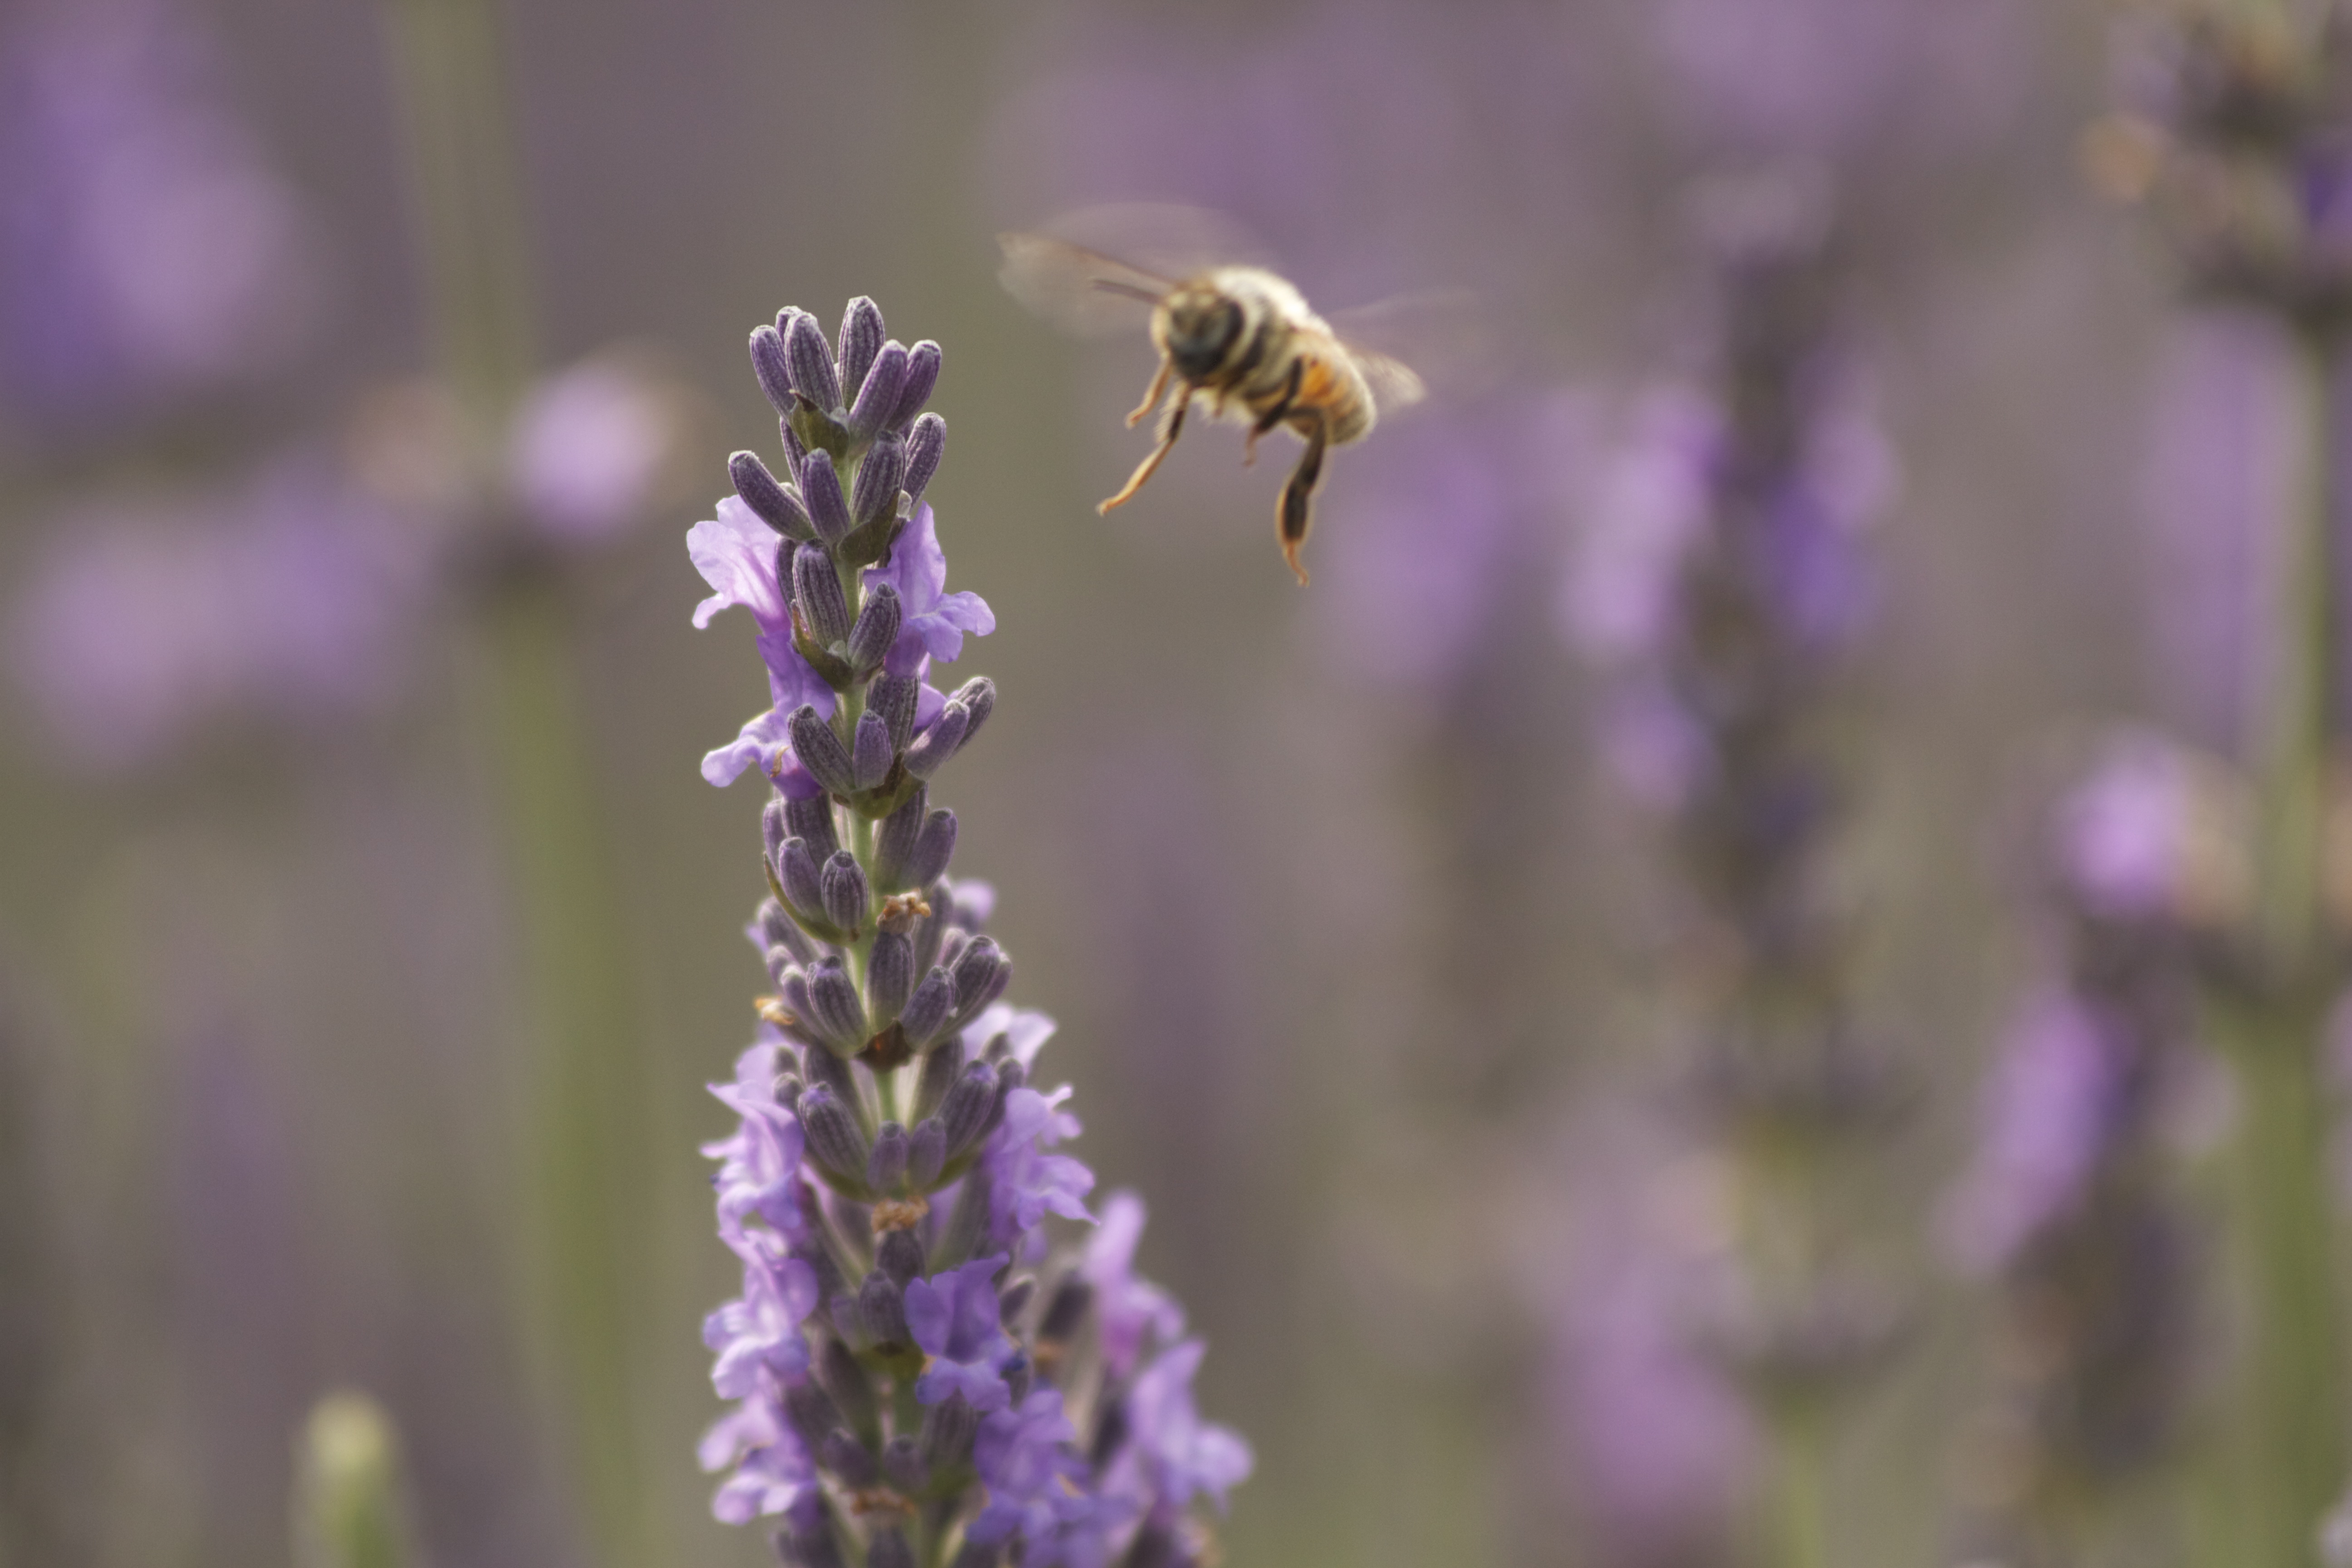 Bees on lavender photo